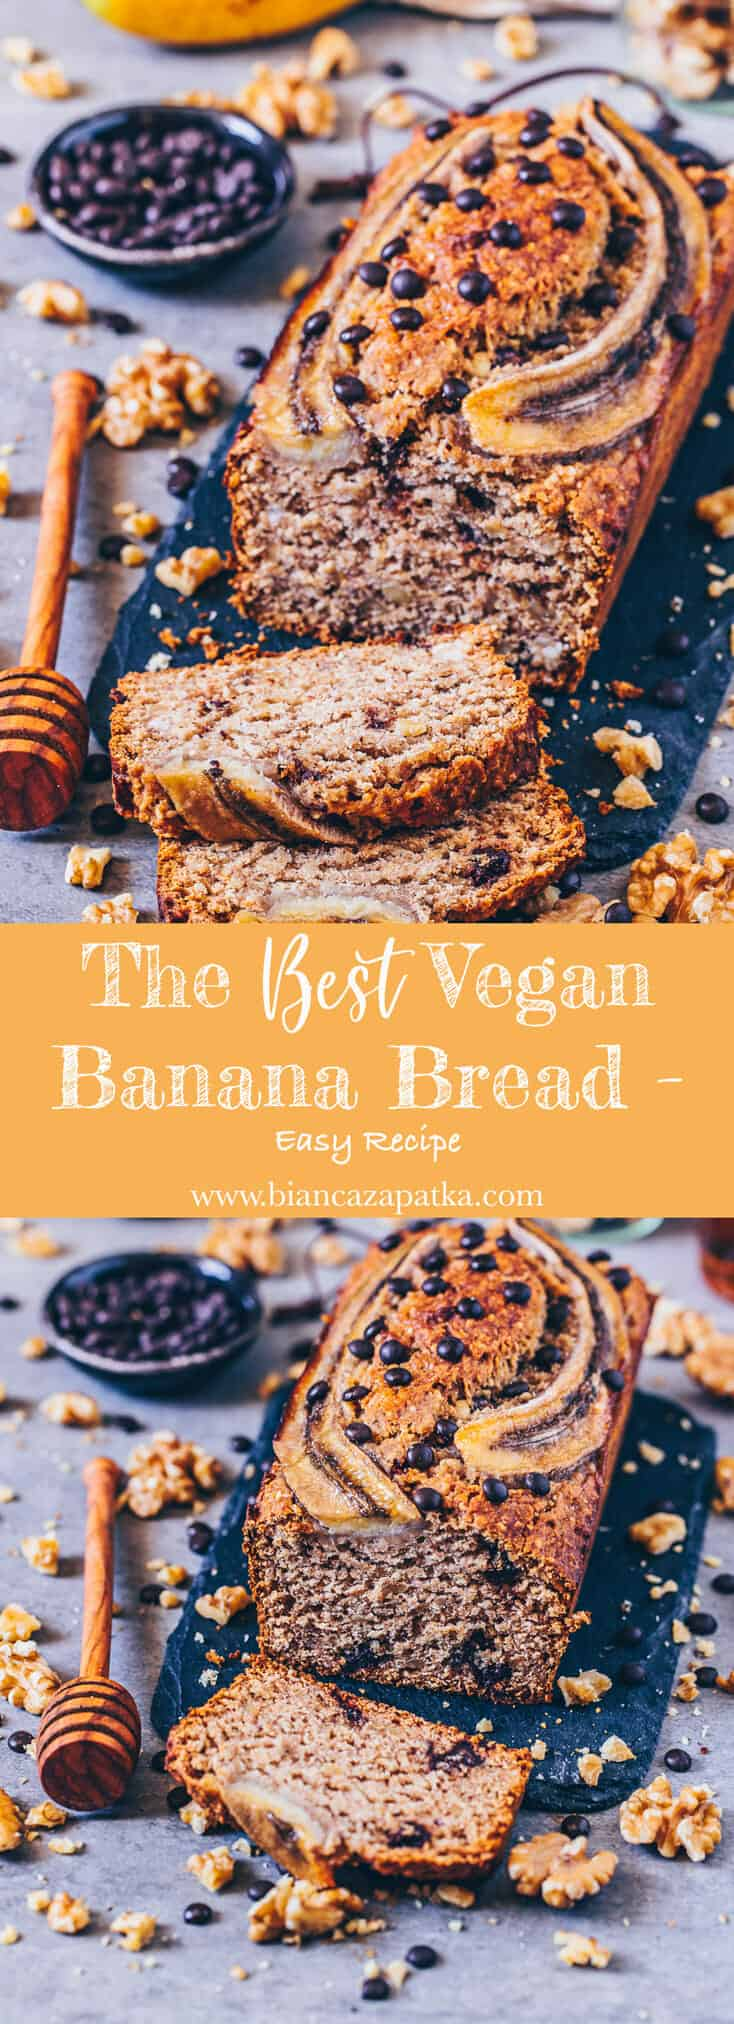 This vegan banana bread is healthy, whole-grain, naturally sweetened and absolutely delicious. It's easy to make and the dough is mixed in only 5 minutes!